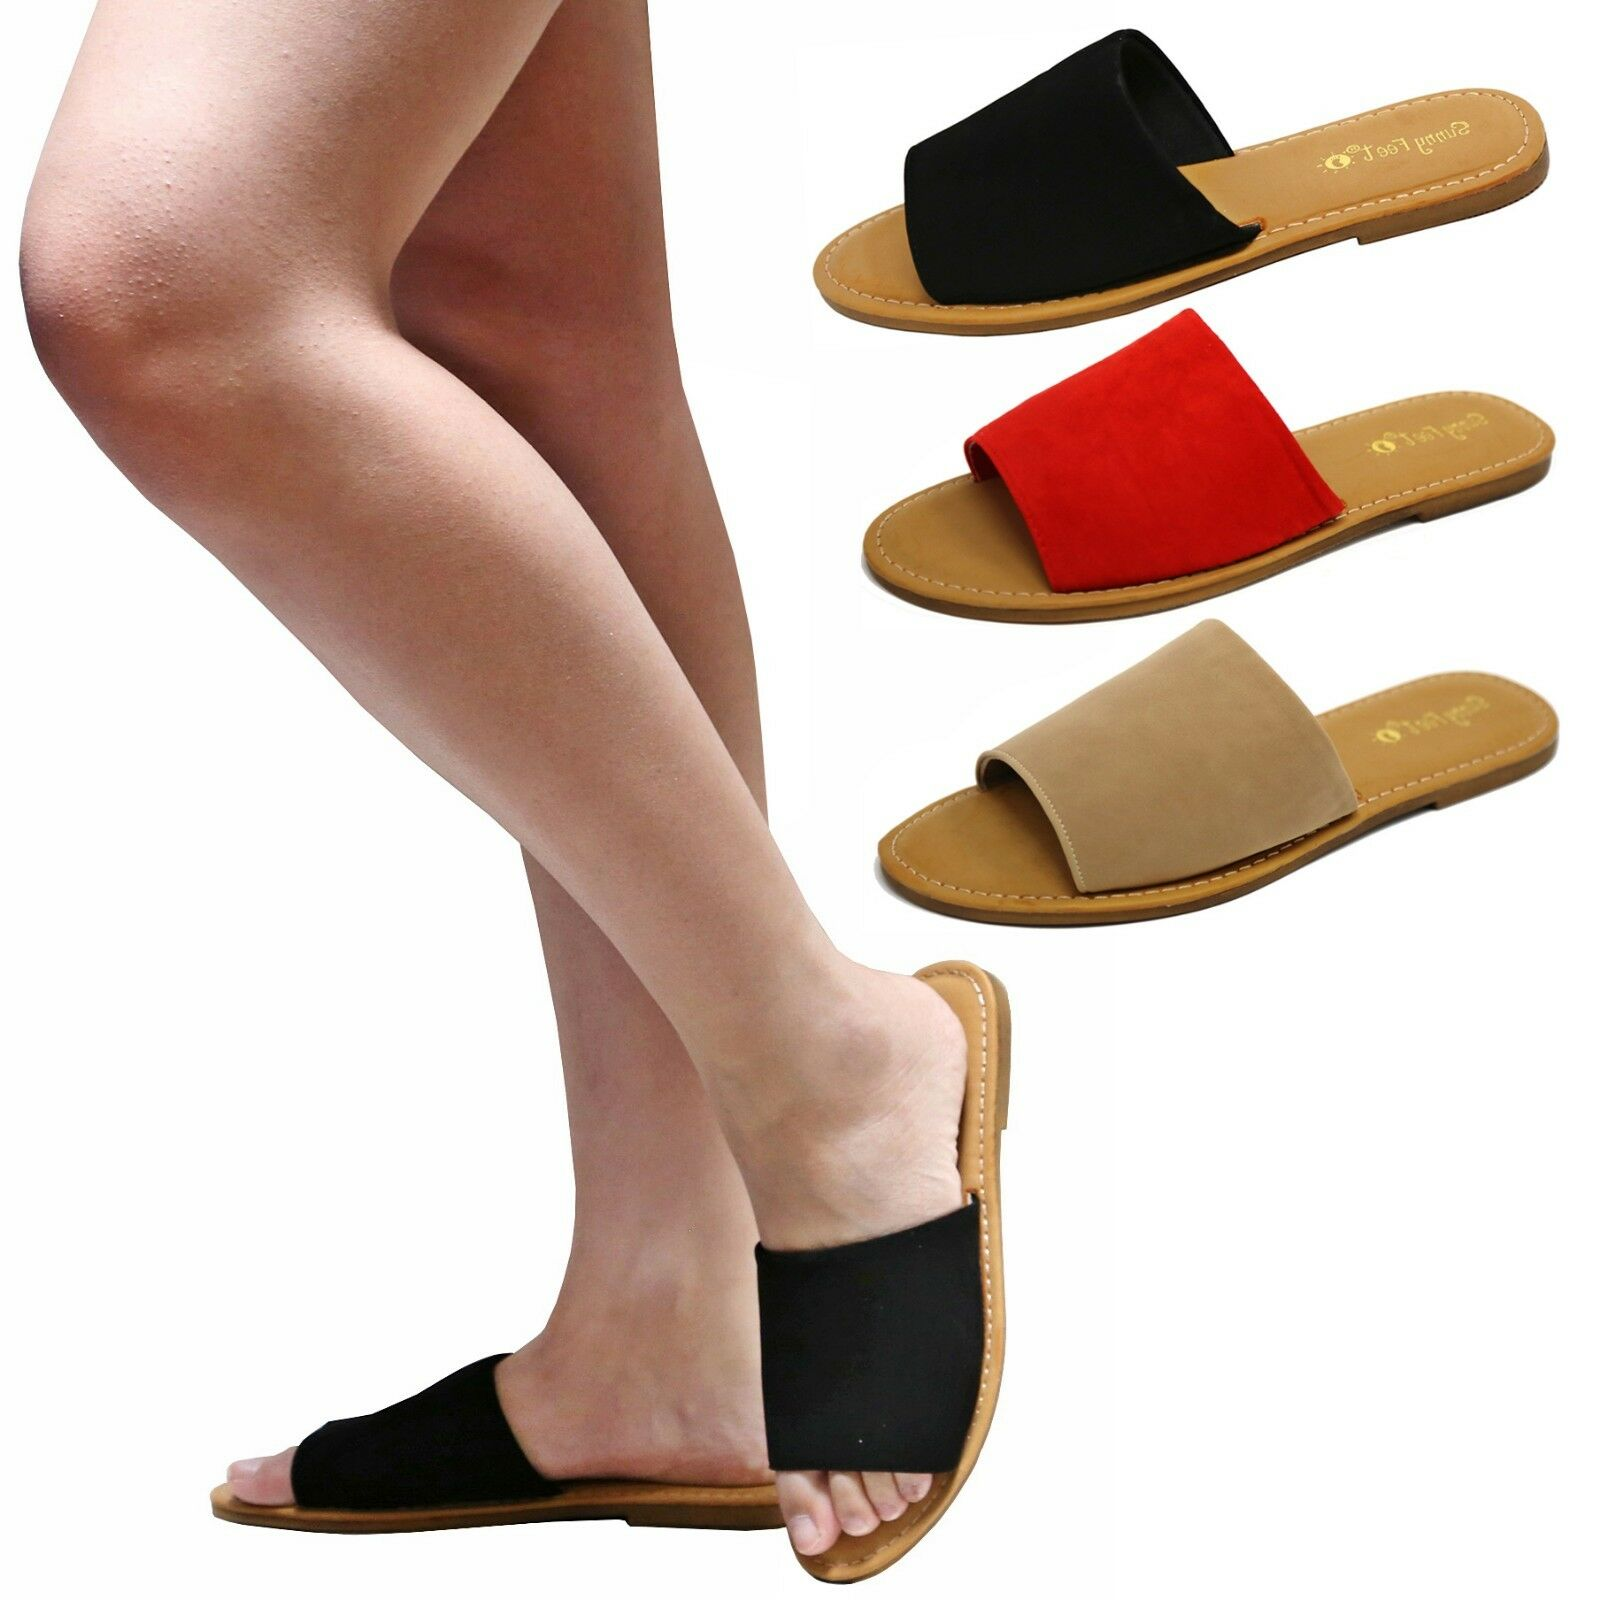 New Women Single Band Sandals Slippers Open Toe Flat Sandals Band Slides BMit e5902a